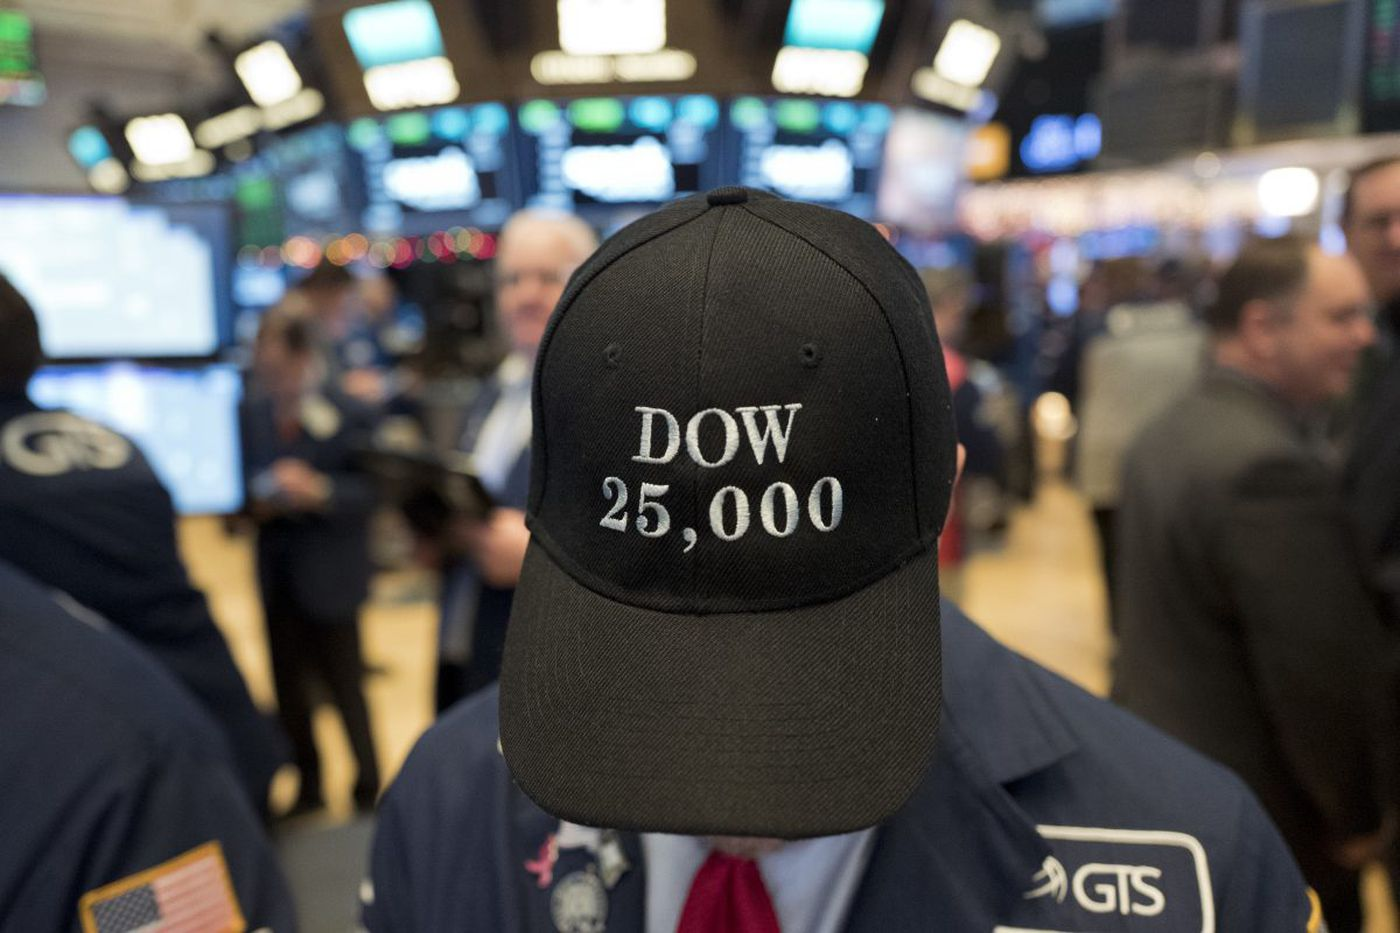 How long did it take the Dow to reach 25,000 from 1,000? Only 46 years